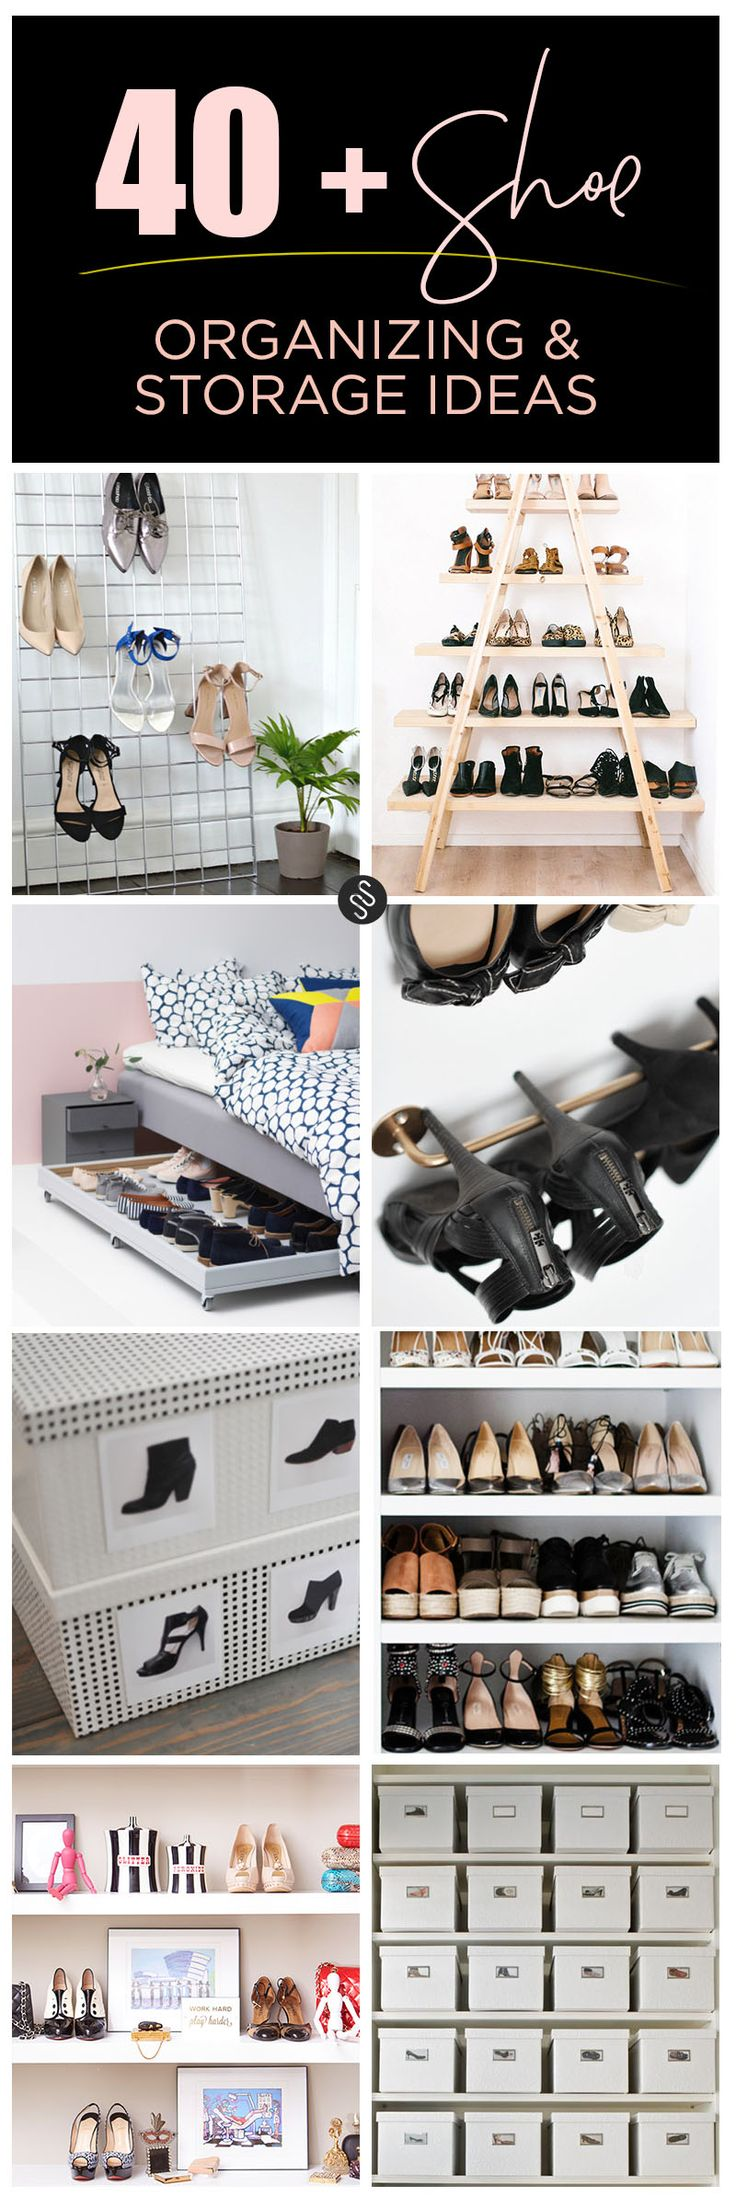 Shoe organizing and storage ideas organized